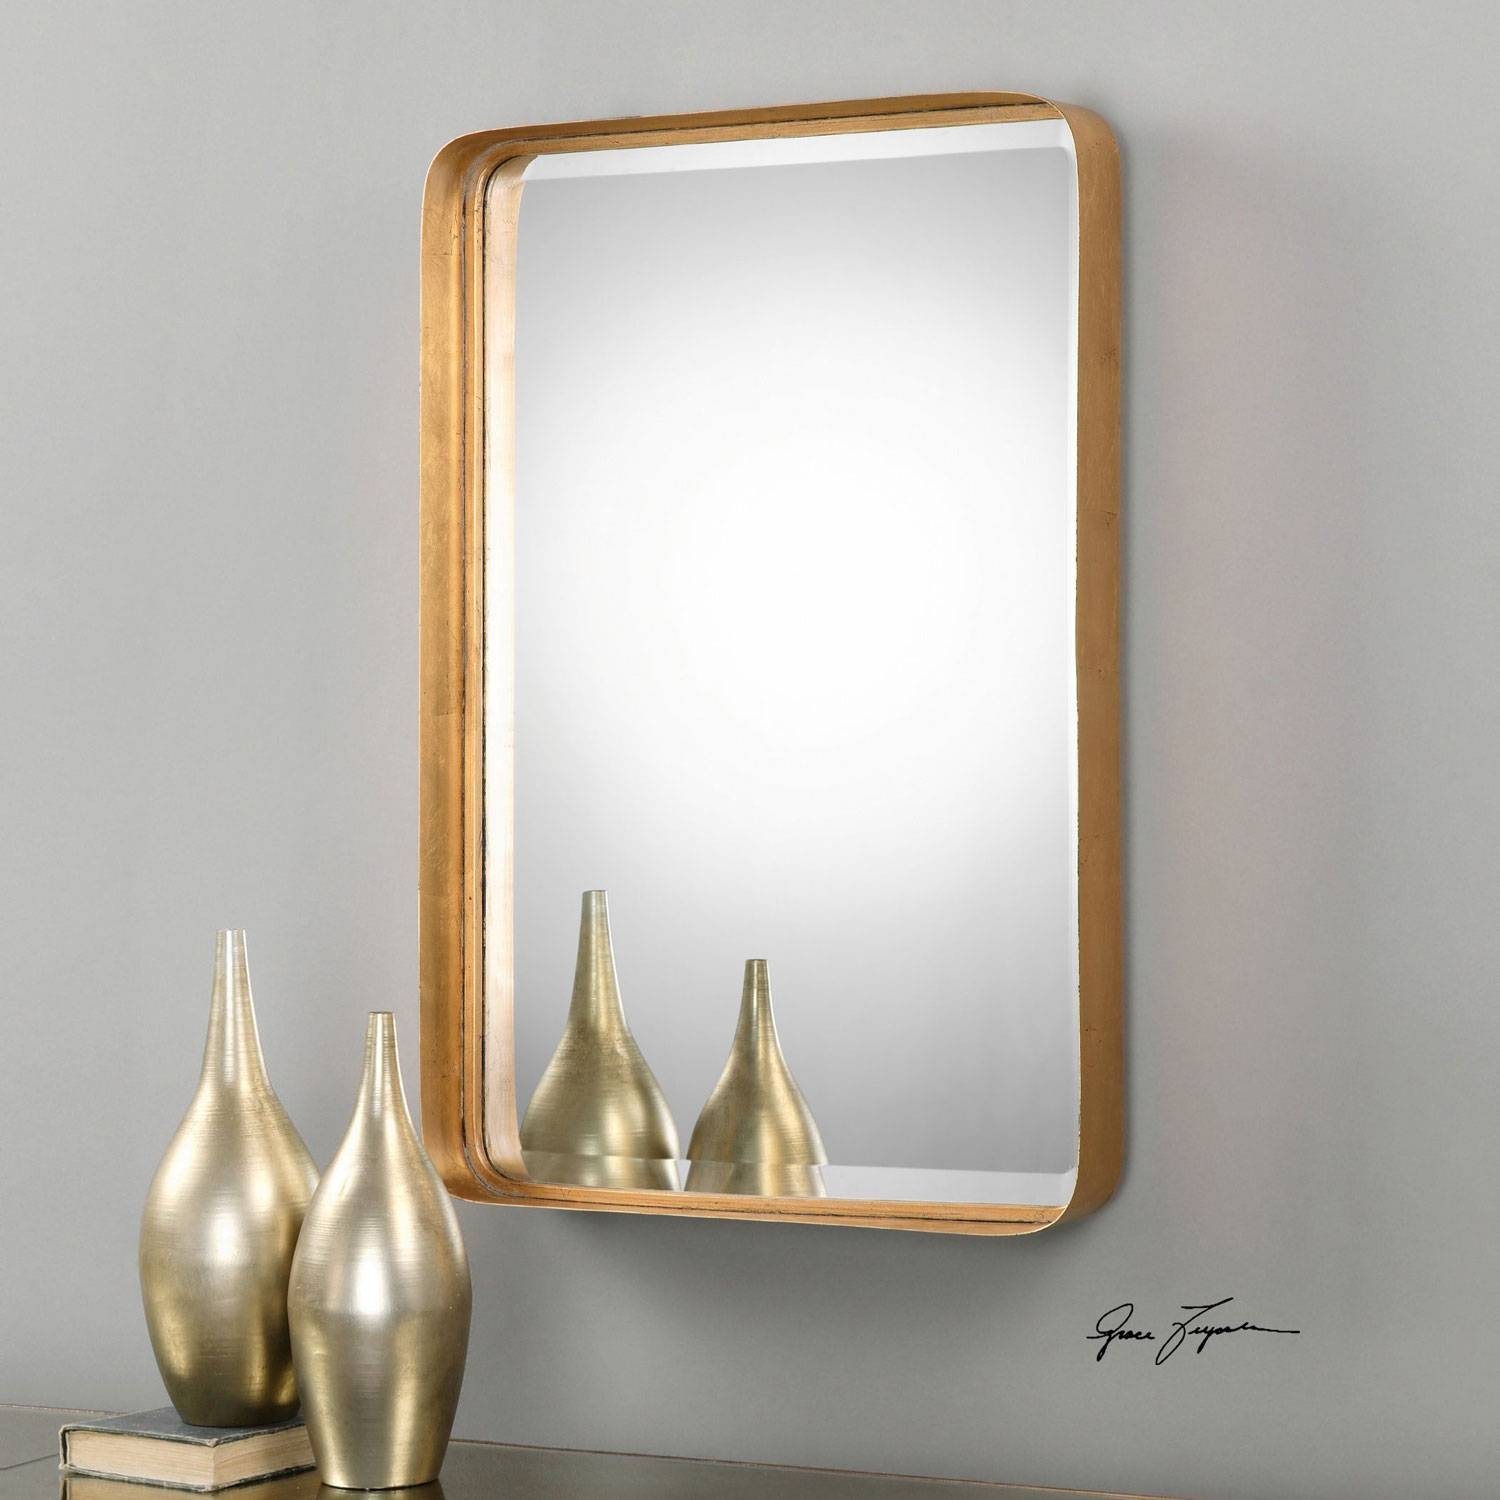 Crofton Antique Gold Mirror Uttermost Wall Mirror Mirrors Home Decor with Gold Antique Mirrors (Image 12 of 25)